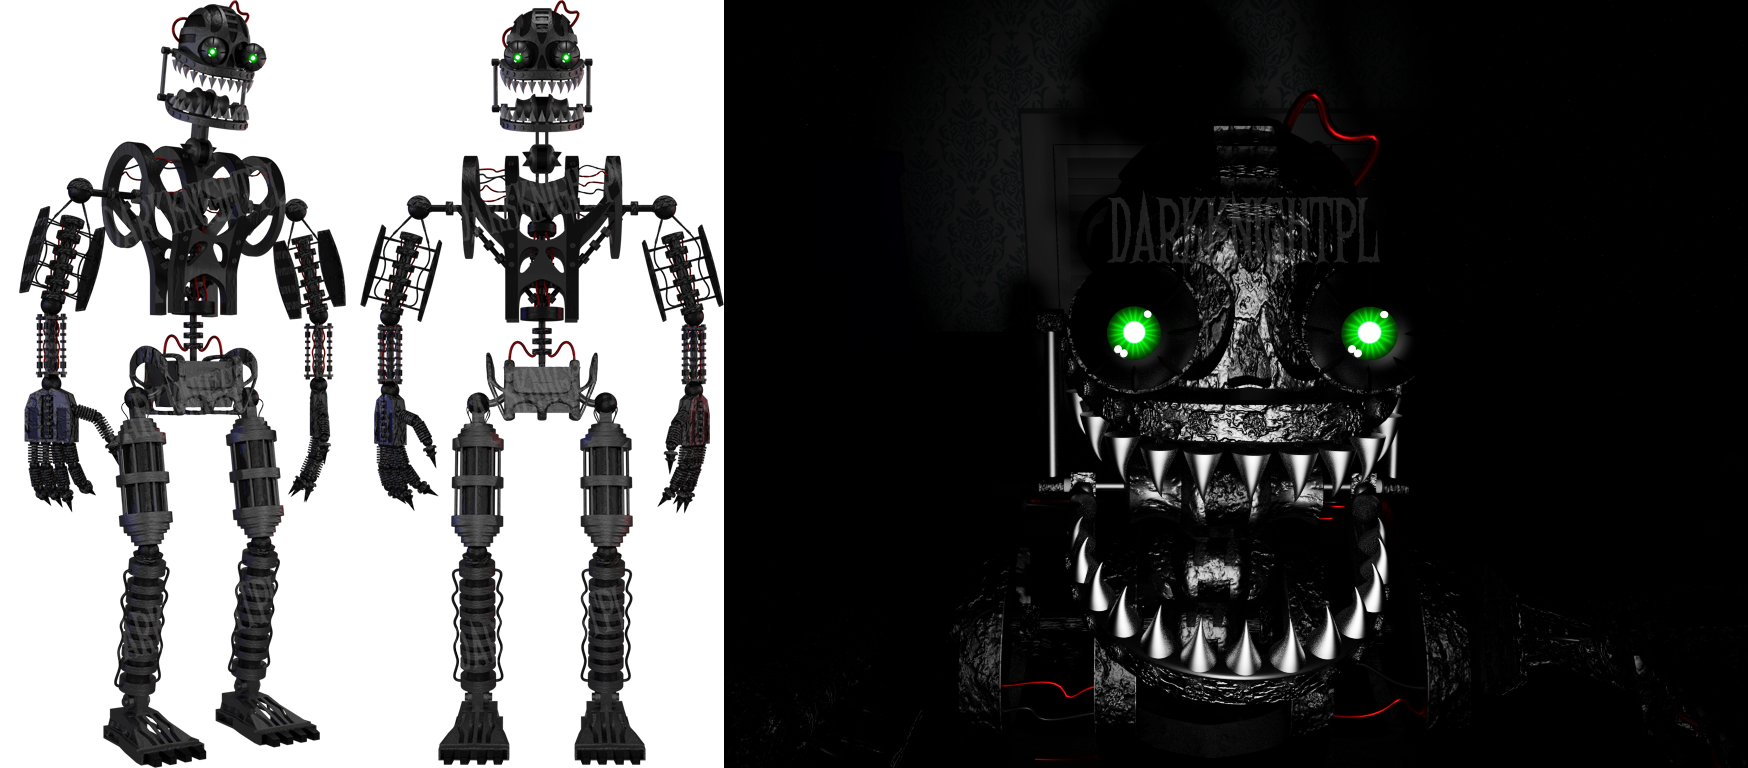 Five Nights At Freddys 2 Character Pictures